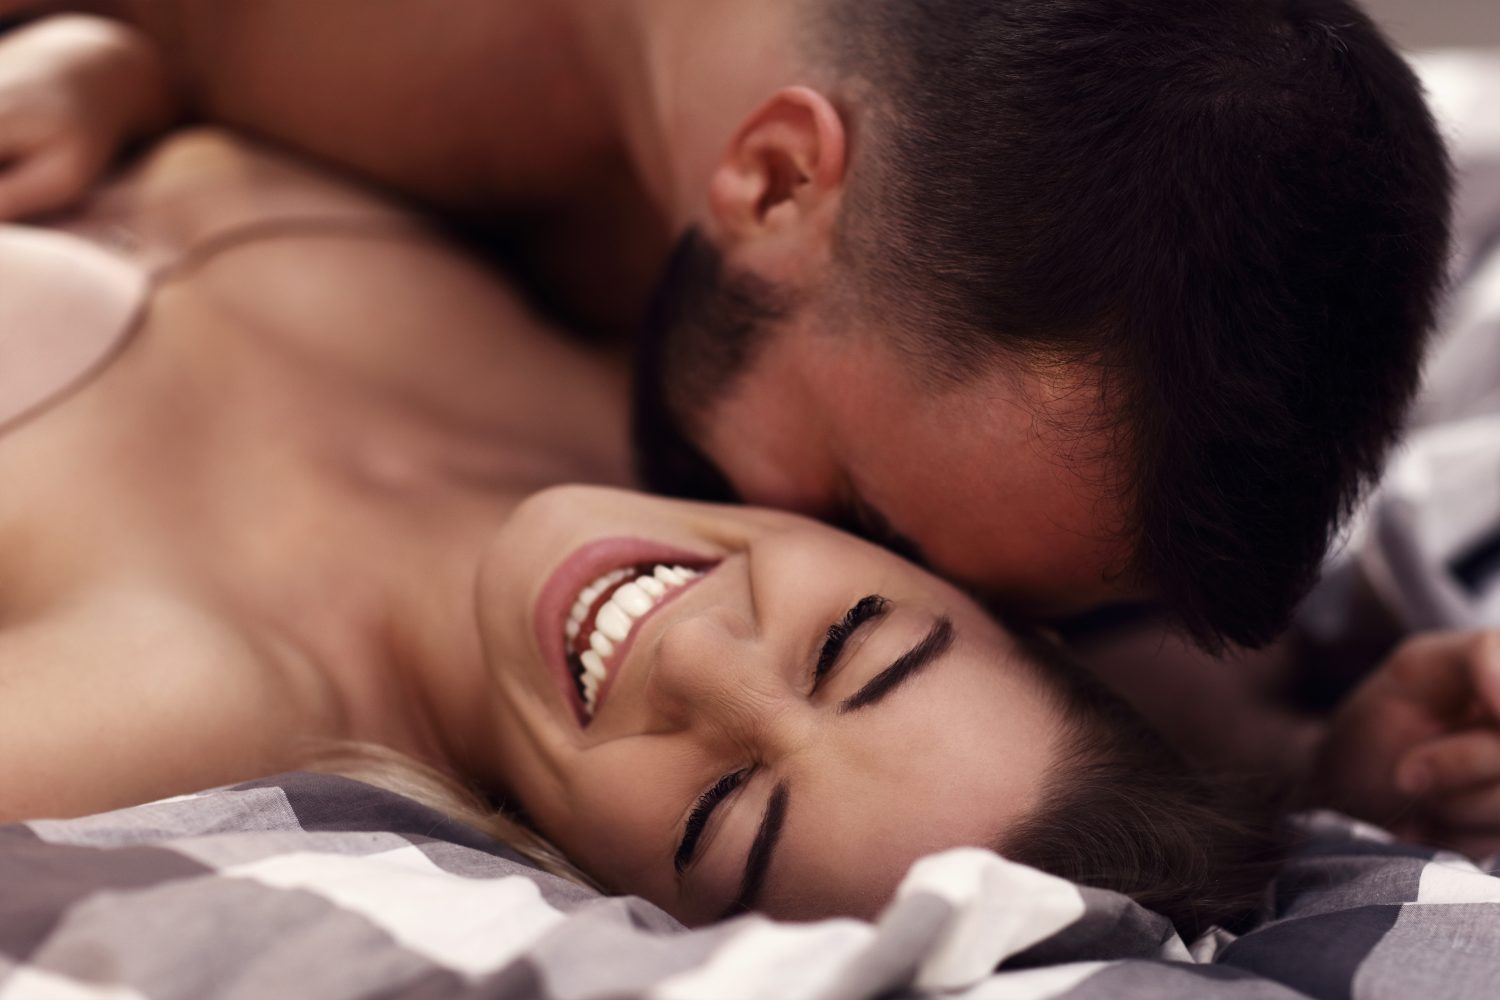 A Guy Talking Dirty Can Improve And Deepen A Relationship